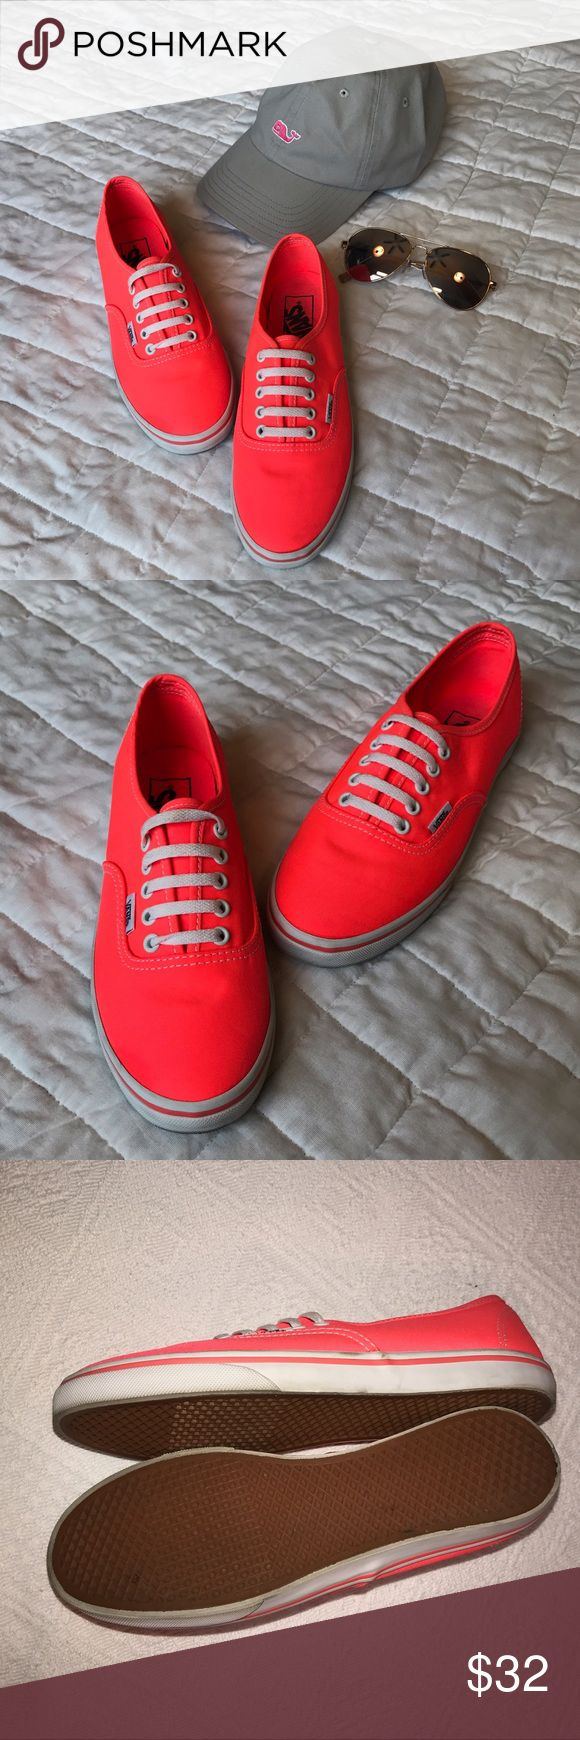 Neon Coral Size 6.5 Vans Canvas Skater Shoes Gently used neon coral VANS in size 6.5 Women's. Worn by my daughter a few times and show a few light signs of wear but overall great condition. Vans Shoes